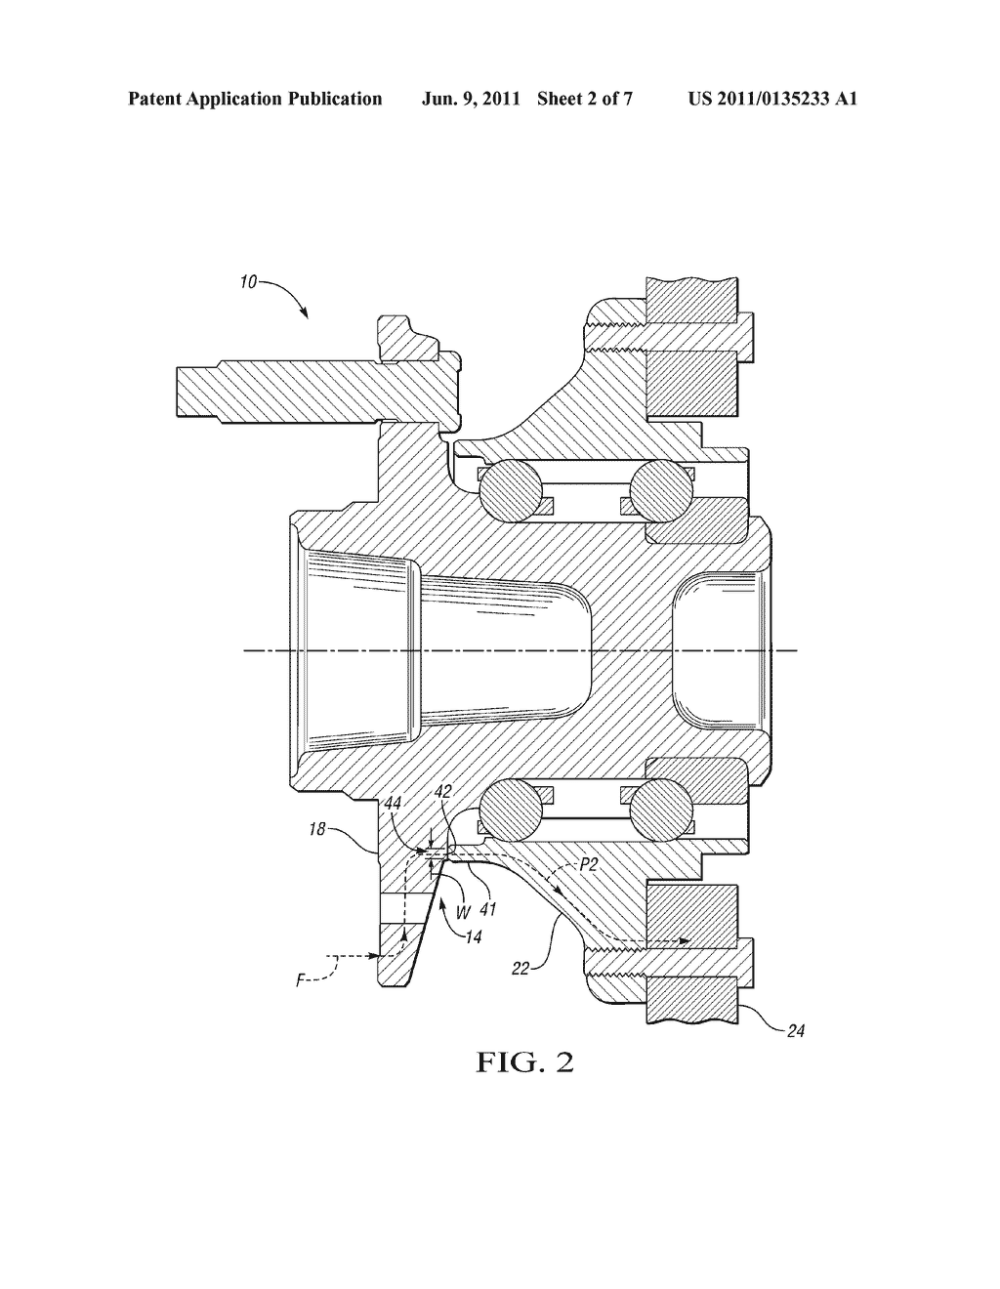 medium resolution of apparatus with secondary load path for vehicle wheel bearing assembly diagram schematic and image 03